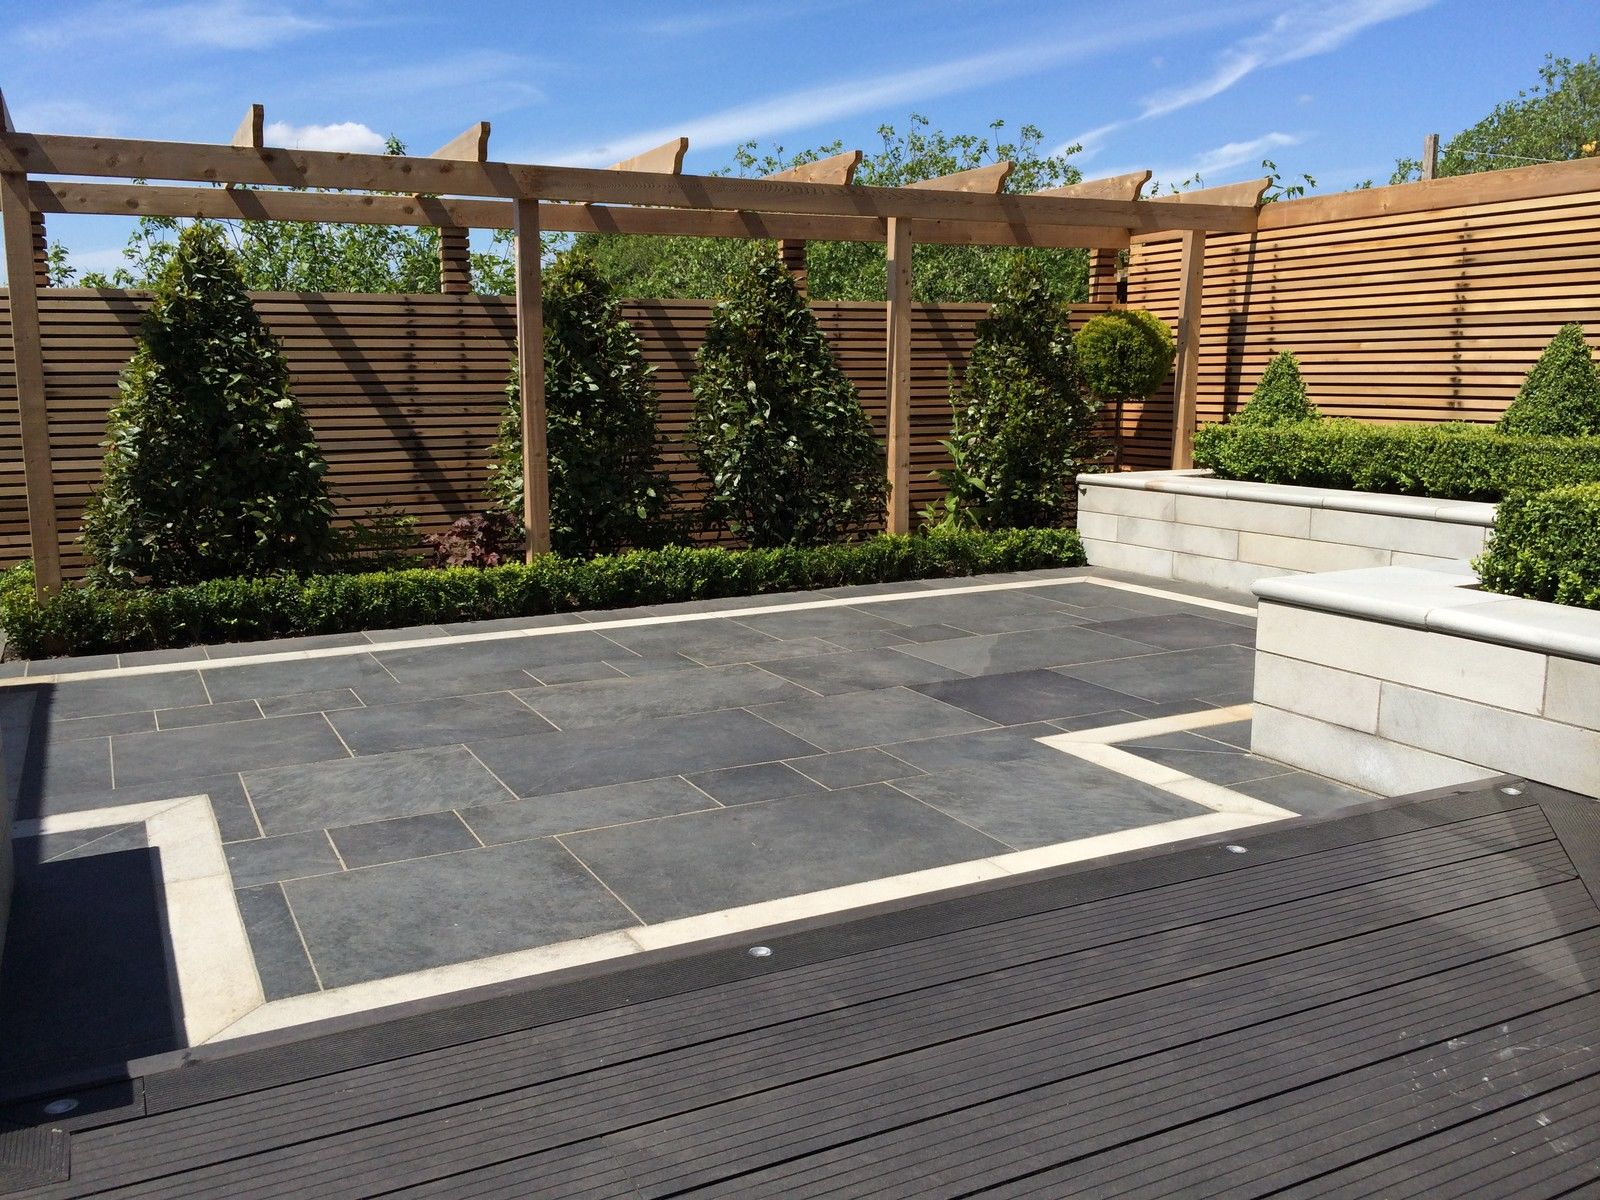 Composite Decking Clarity Charcoal 15 Square Metre Pack (incl. fixings)